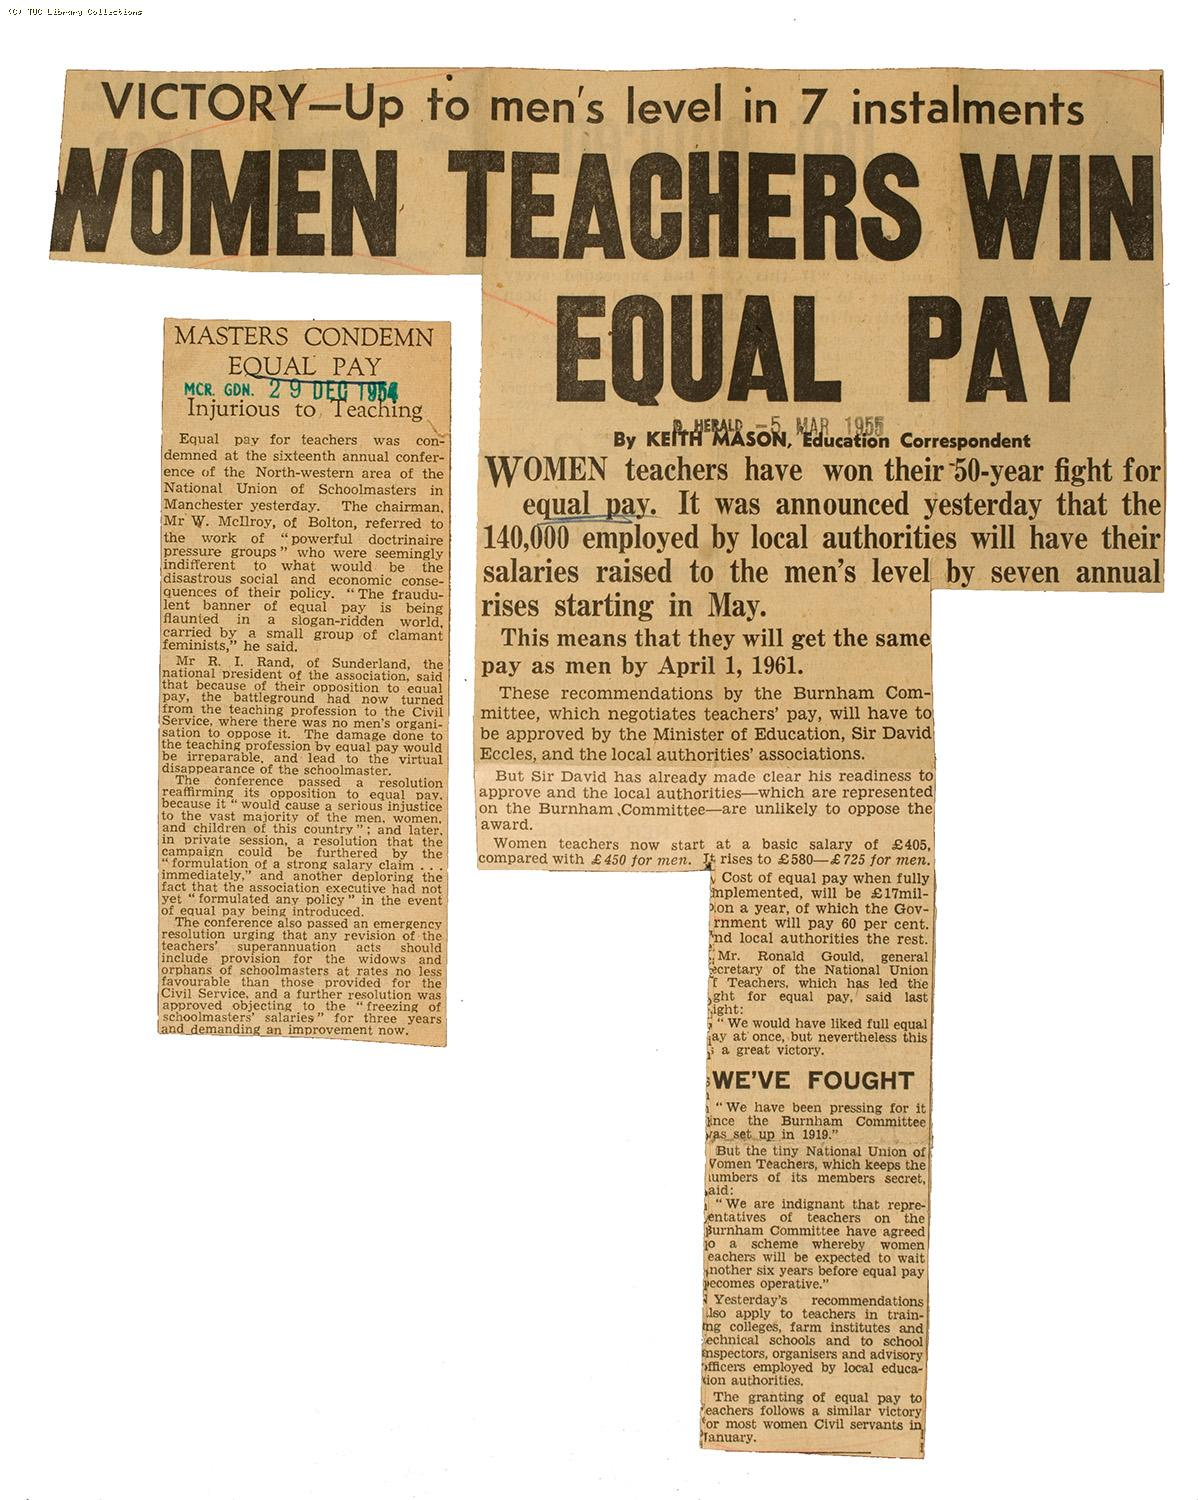 Equal pay in teaching, 1955